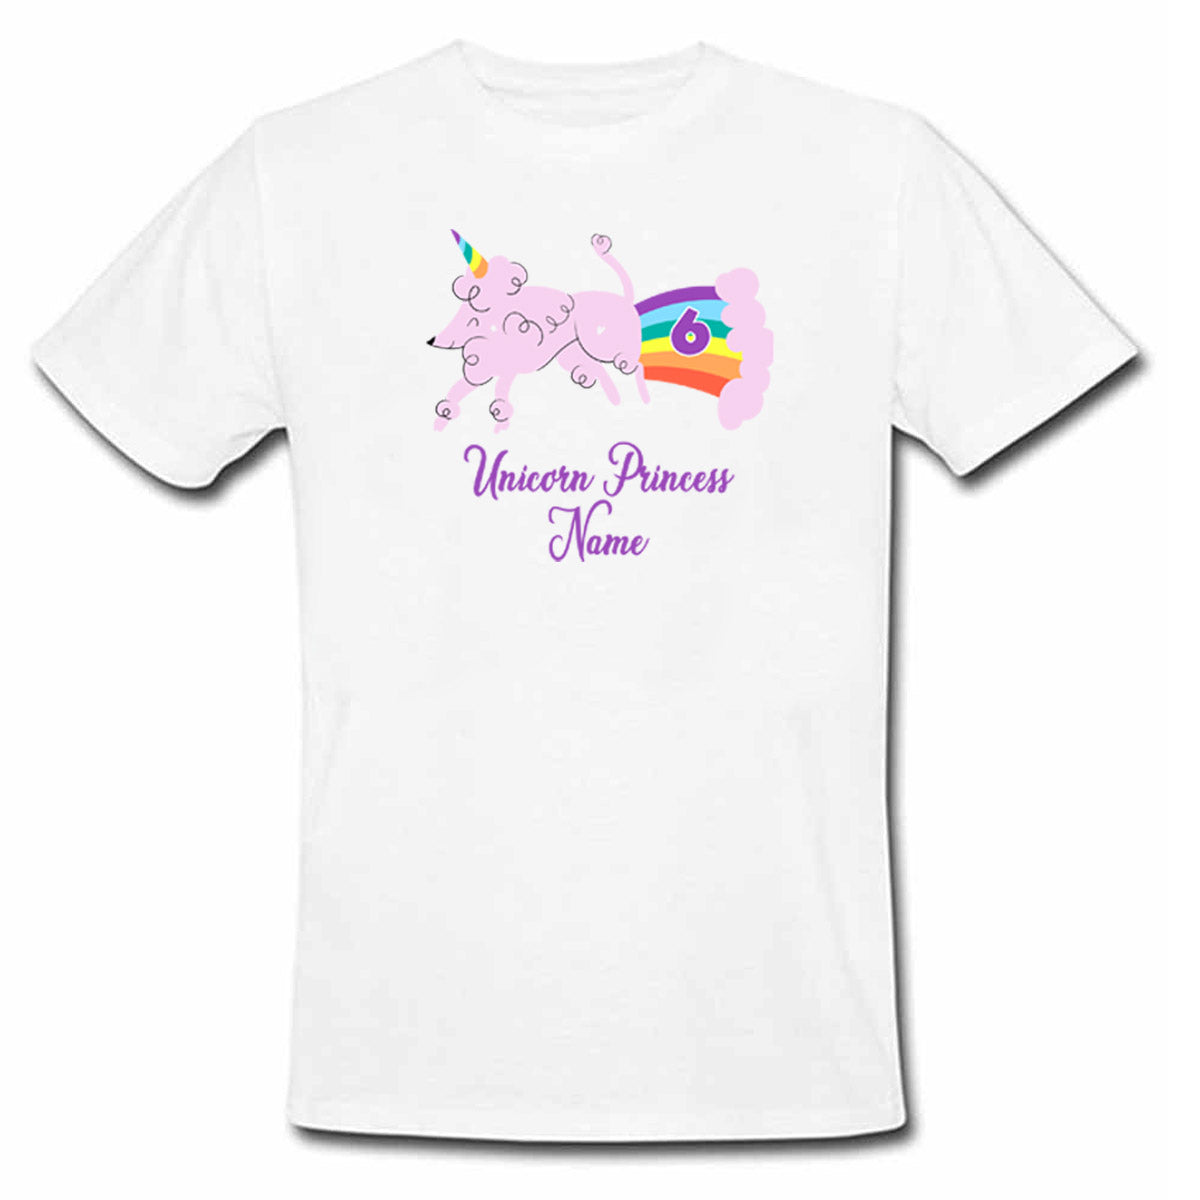 Sprinklecart Ideal Personalized Unicorn Name Printed Poly-Cotton Kids Tee Wear (White)